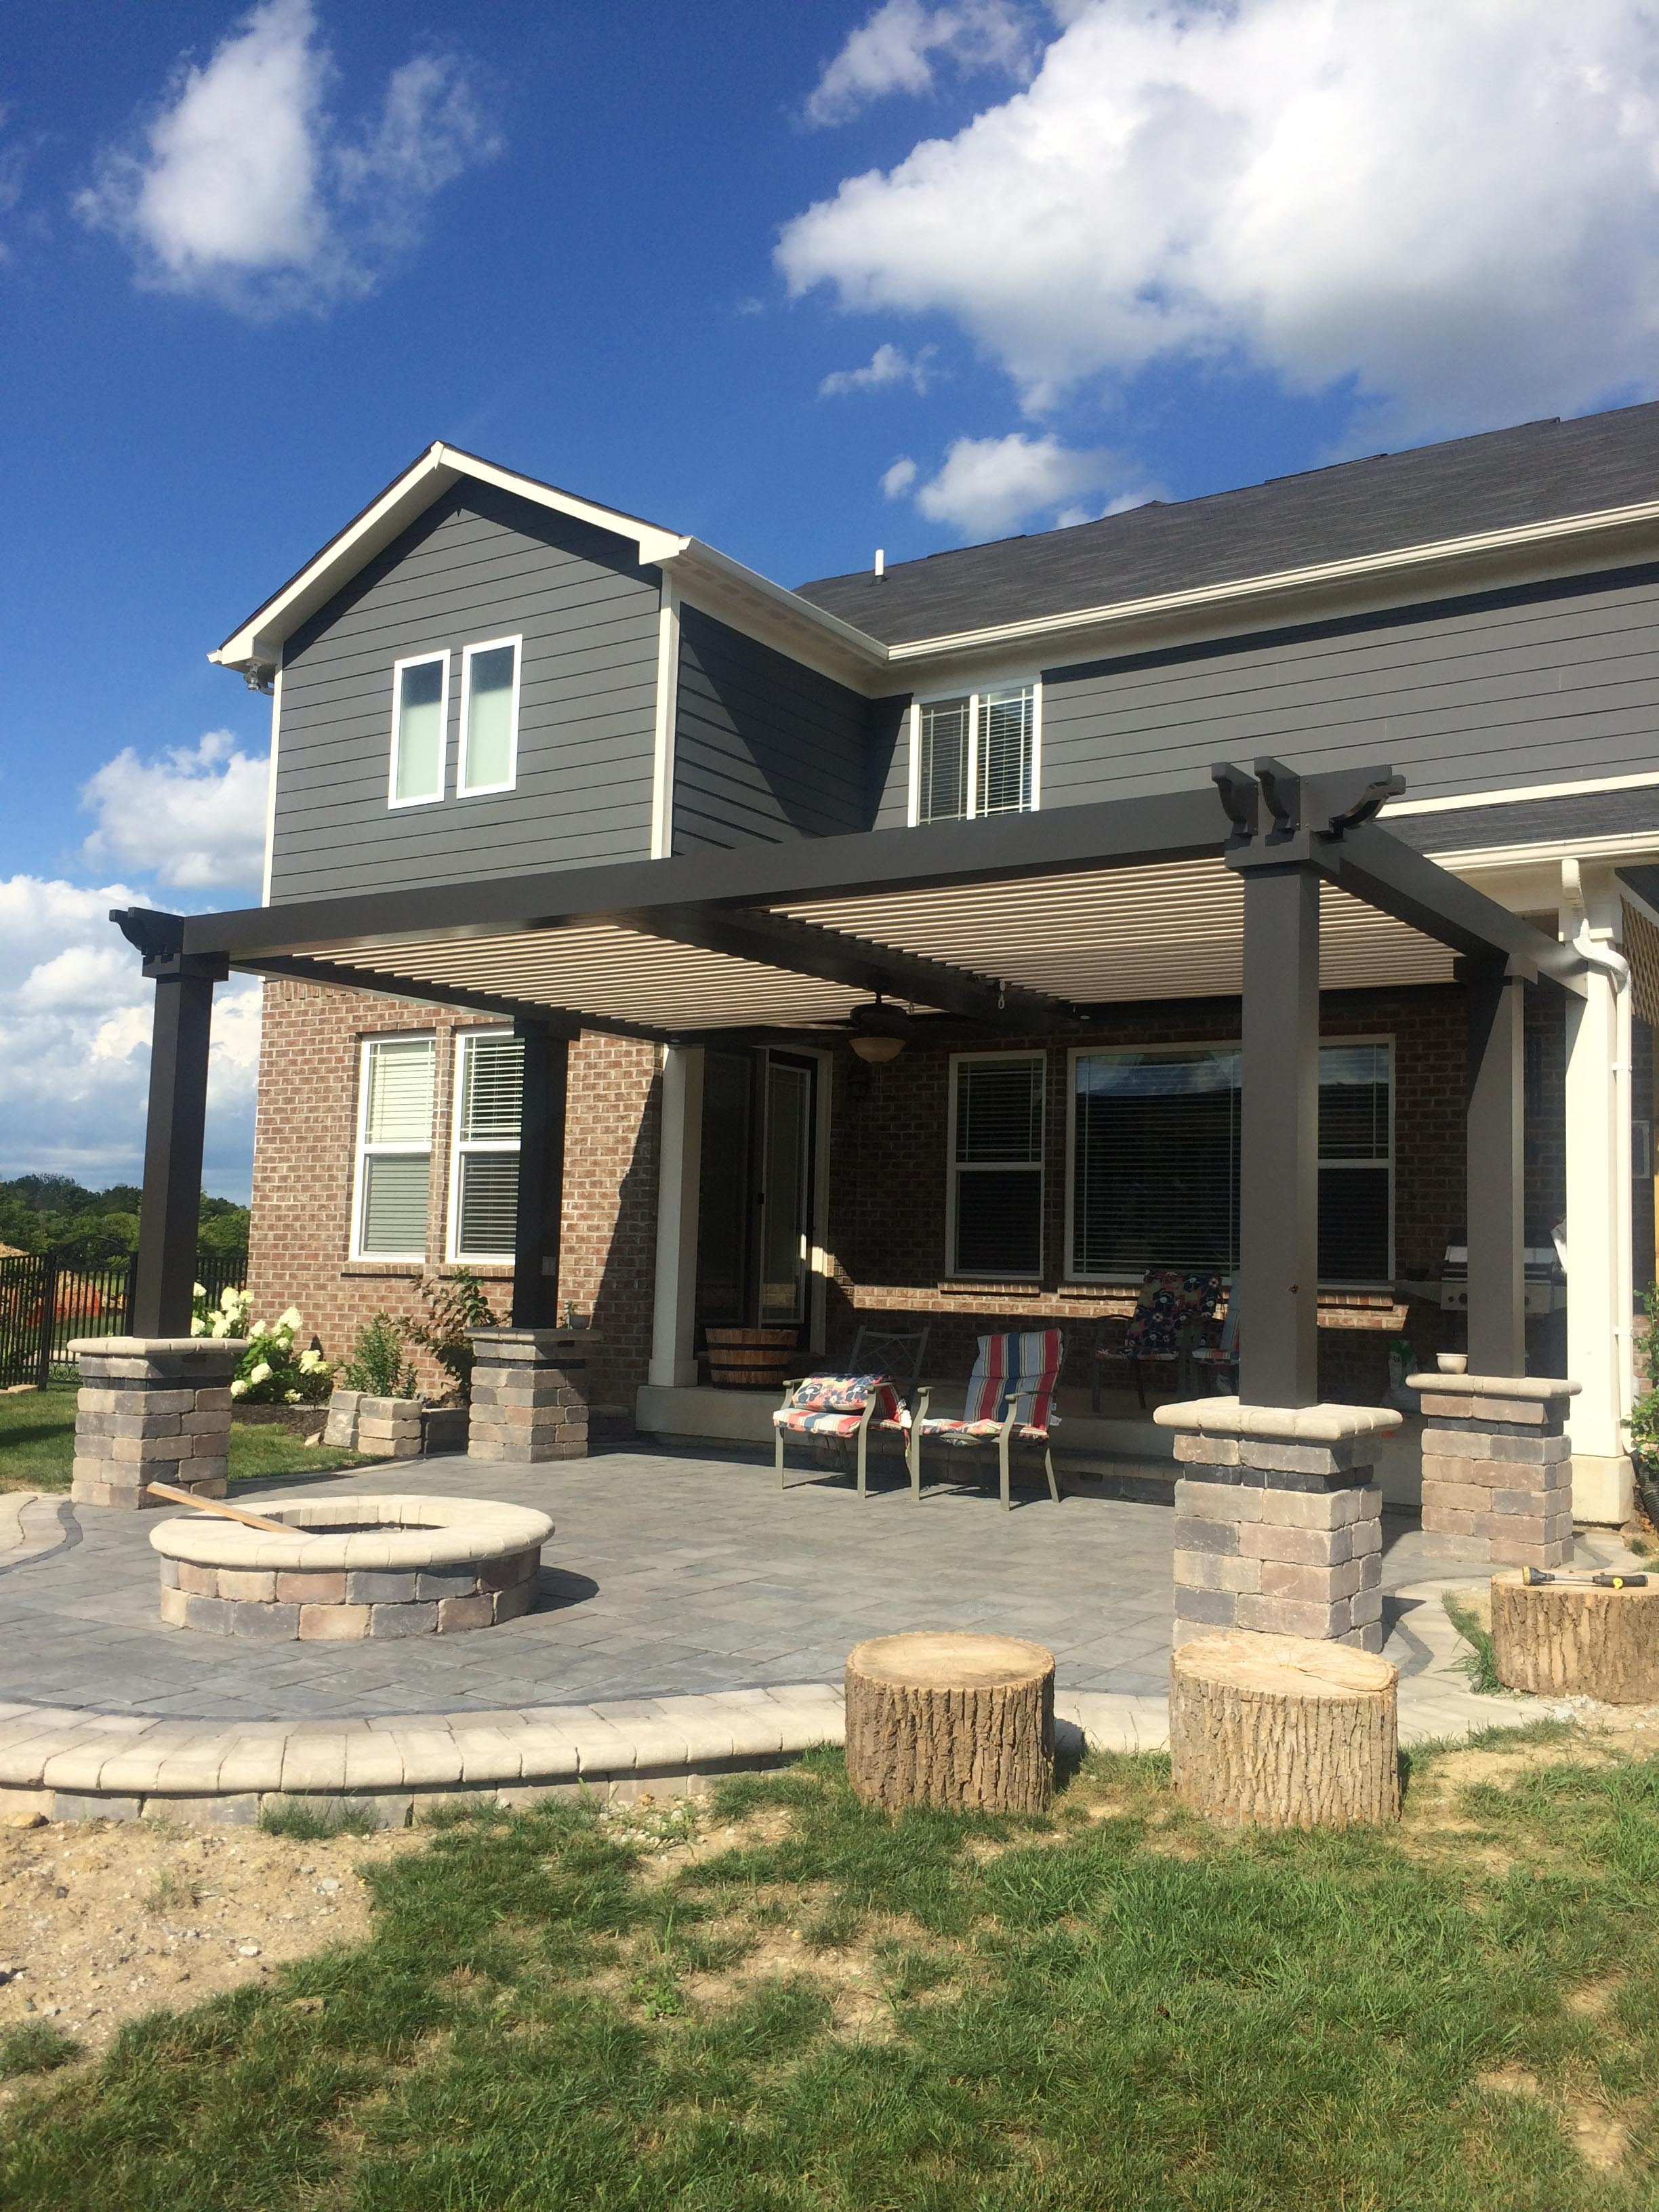 Zionsville, IN.  Patio cover - Free standing